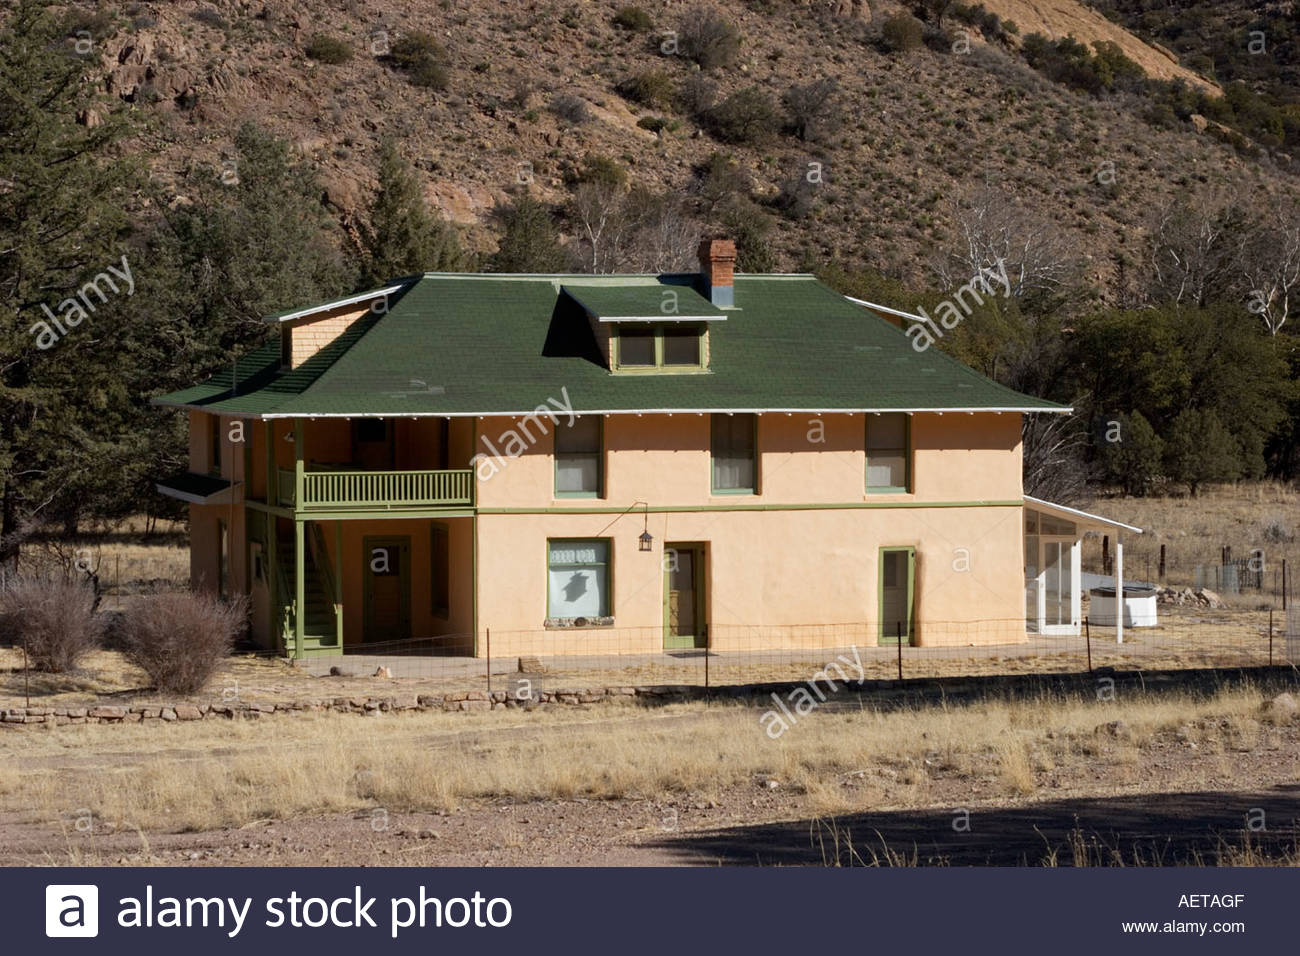 Faraway Ranch Headquarters Chiricahua National Monument Arizona home of Neil Erickson and Emma Erickson who settled here in 1888 - Stock Image